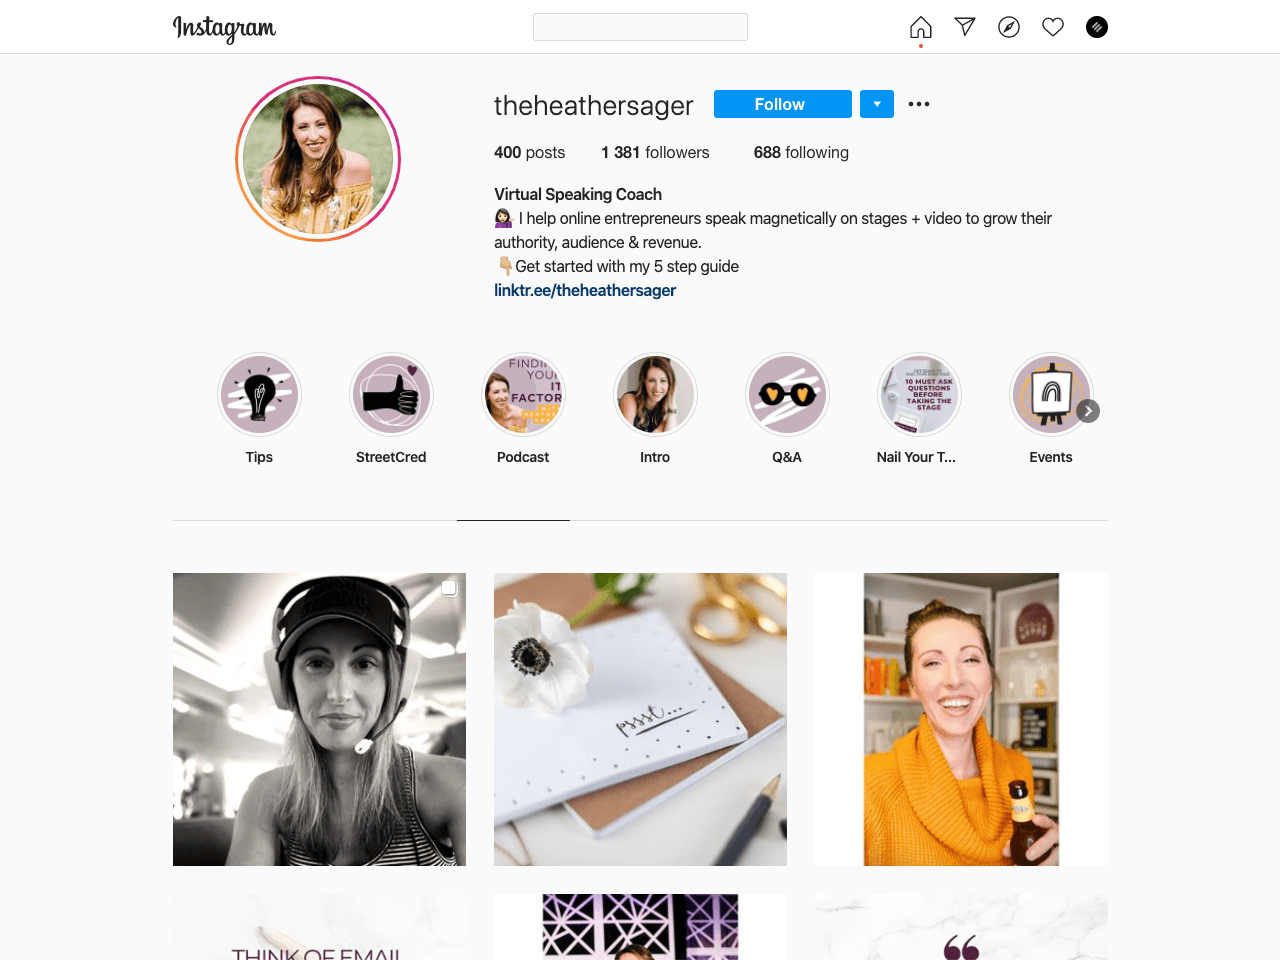 Virtual speaking coach Instagram bio example with an email opt-in form